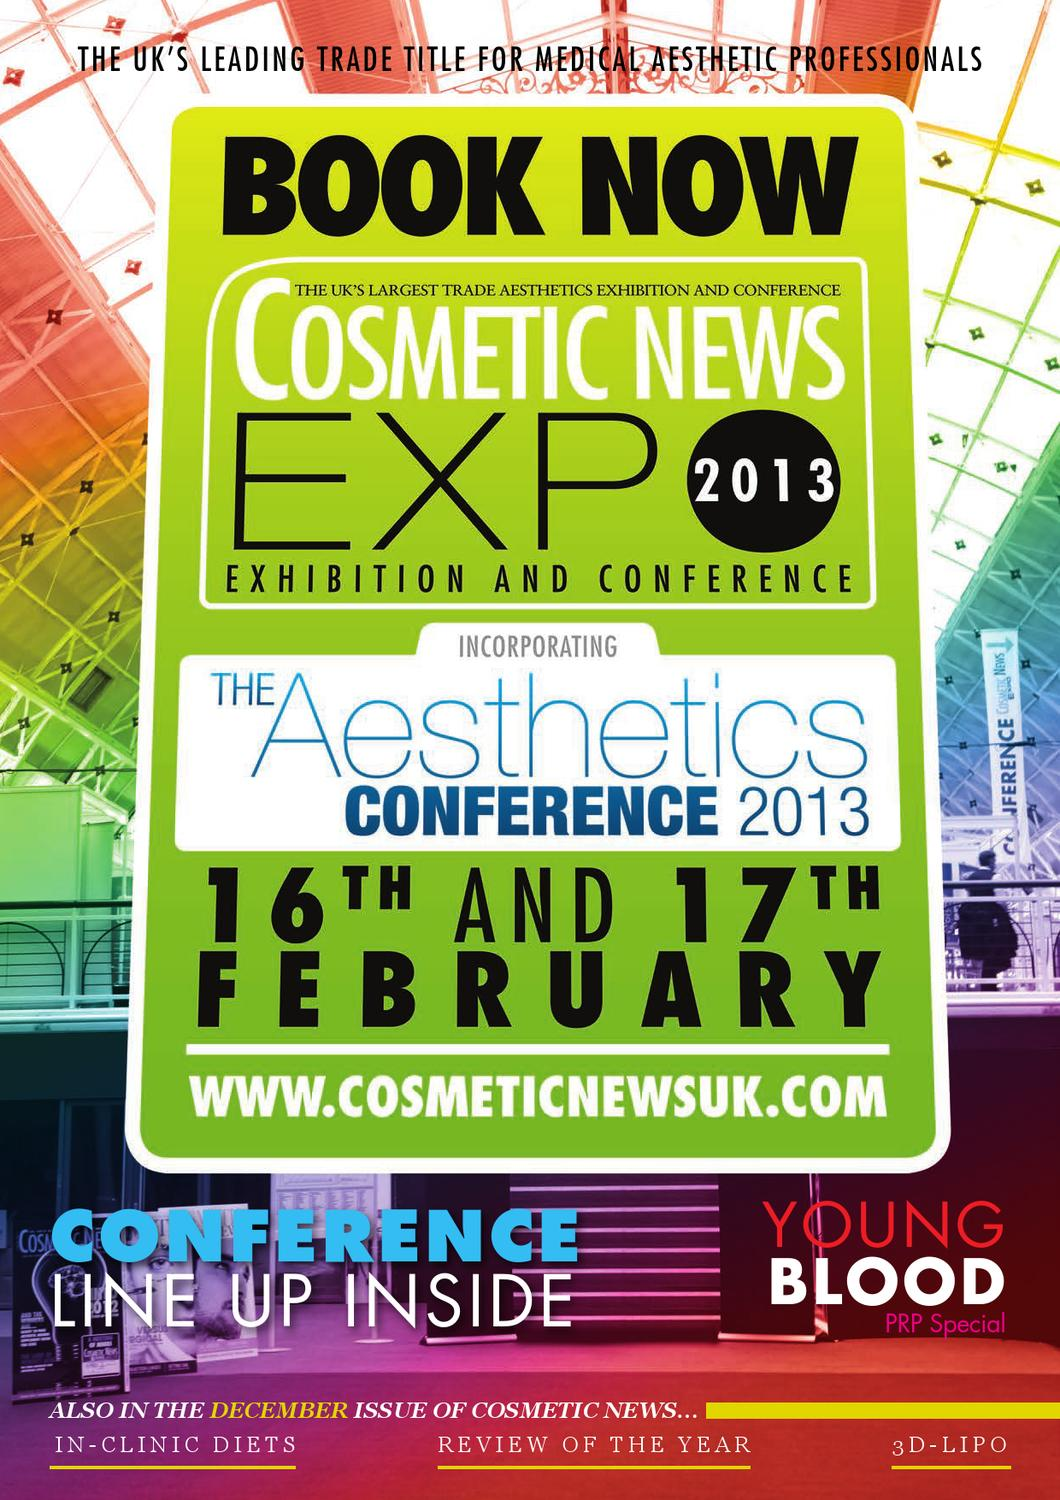 Cosmetic News UK Dec 2012 by webwax - issuu